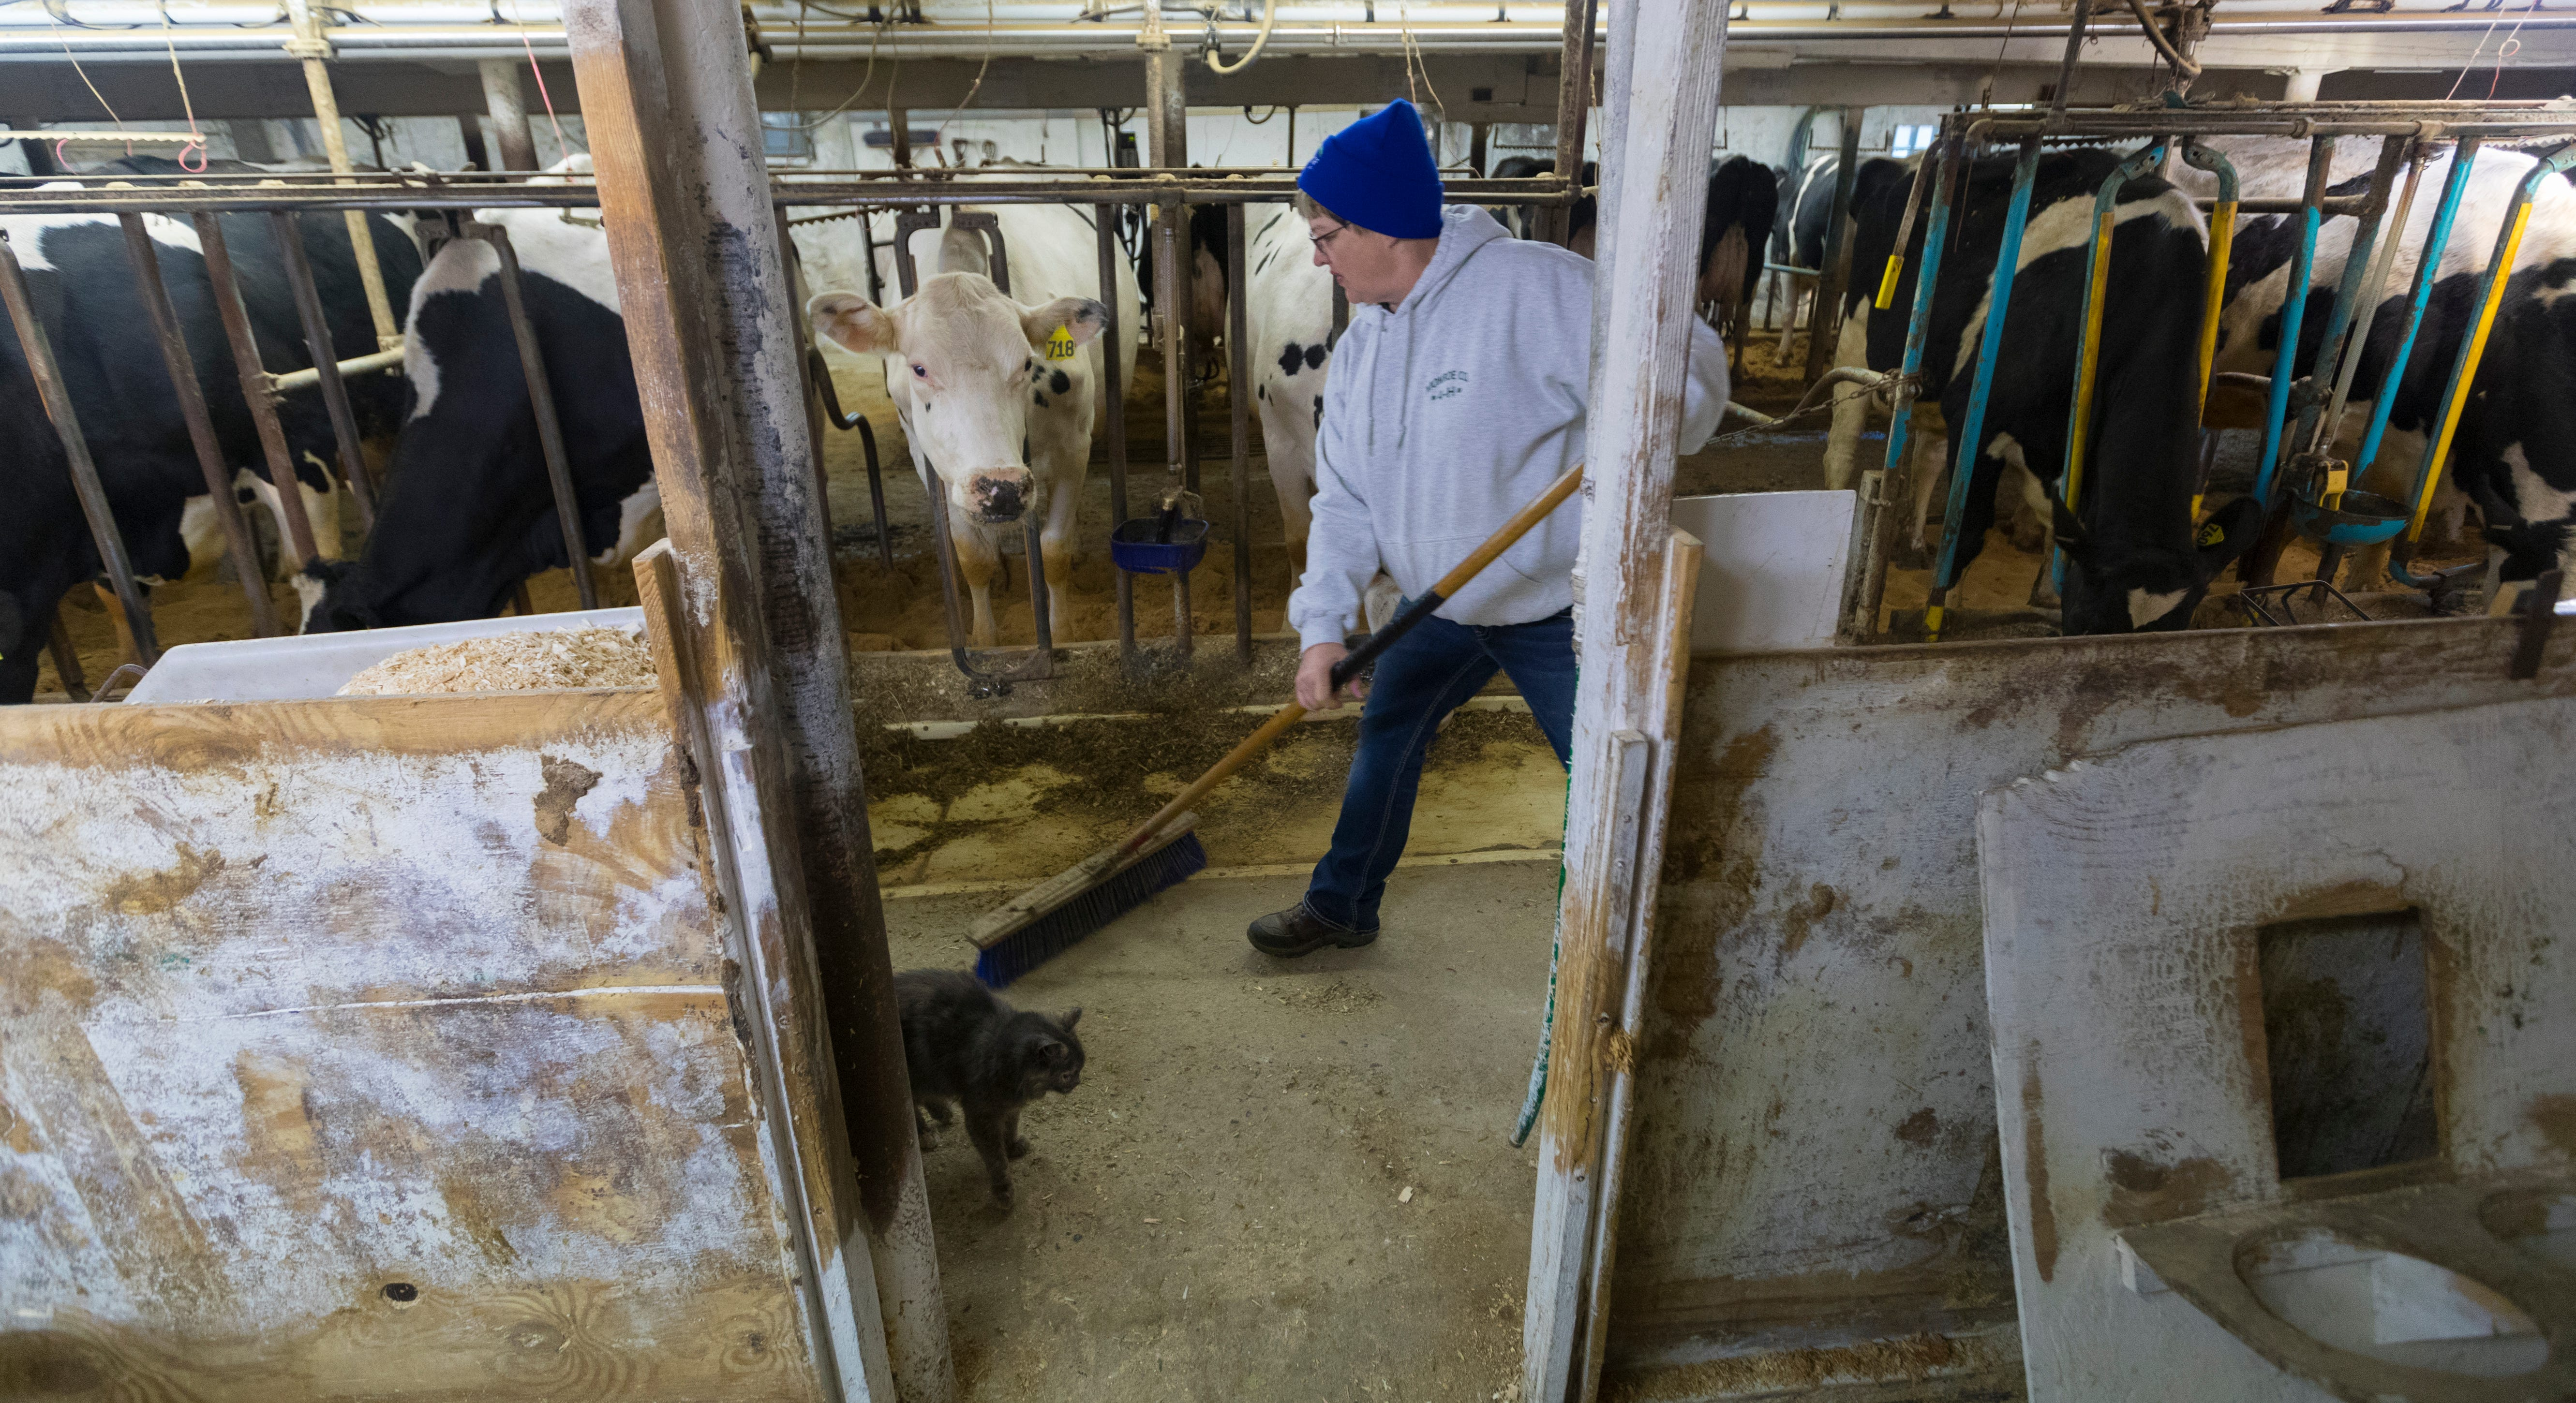 Annette Trescher sweeps around a barn cat while doing morning chores on her family's farm in Cashton. They currently milk about 80 cows twice a day.